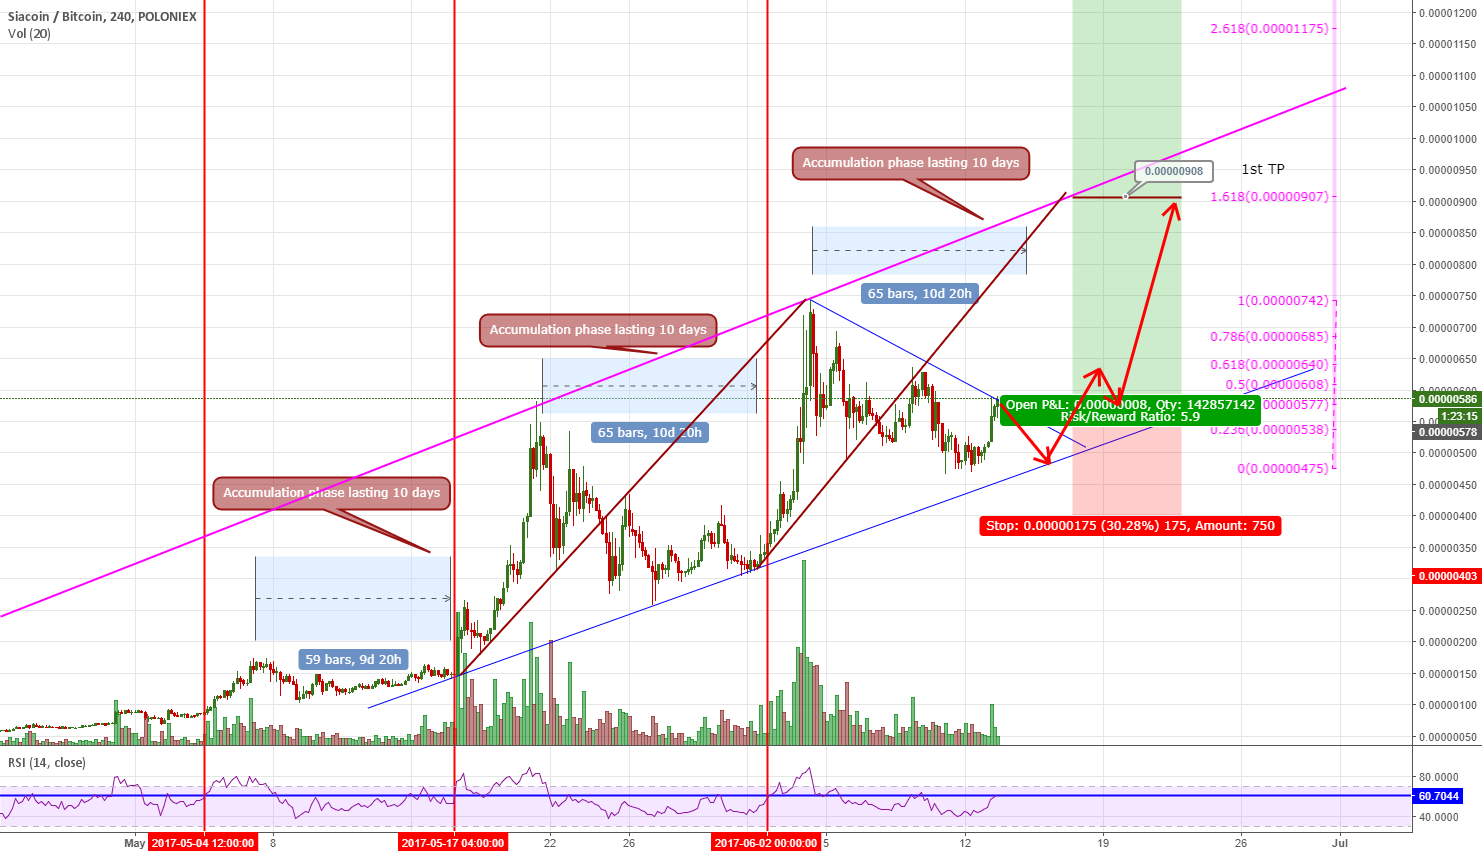 SCBTC - Is accumulation phase nearing end? Update - Long